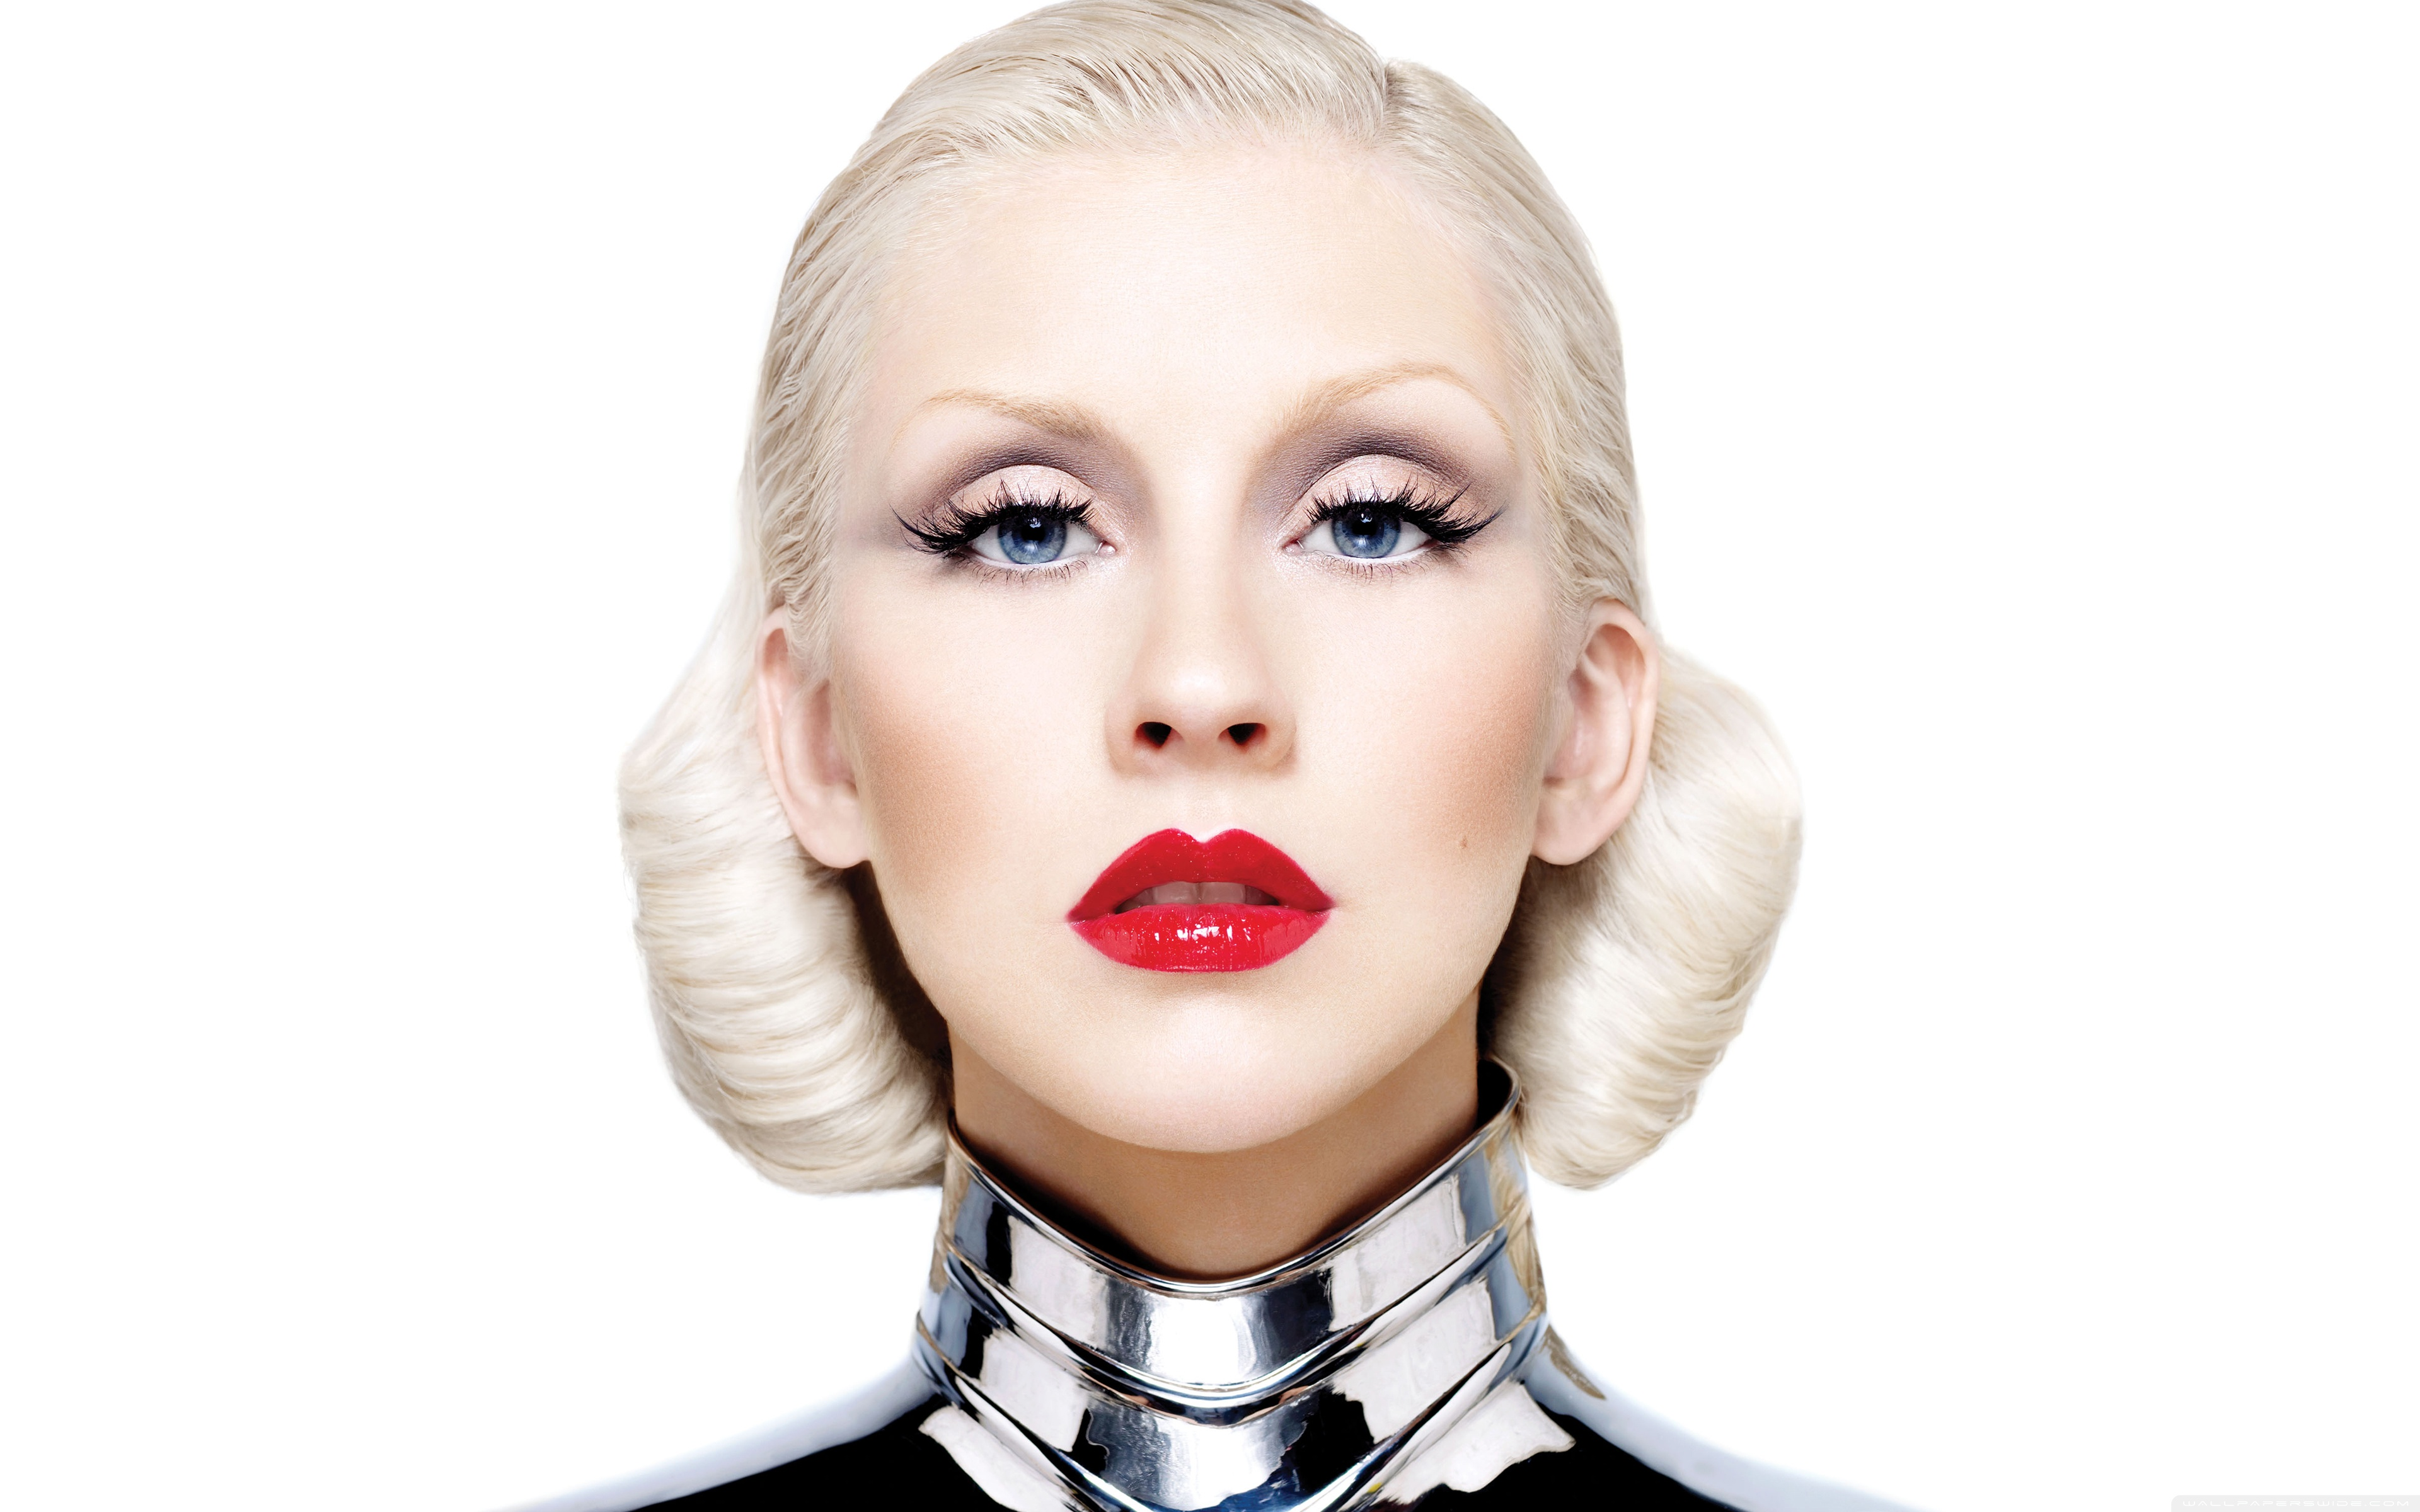 Christina Aguilera Wallpapers HD OOIZT8L   4USkY 3840x2400